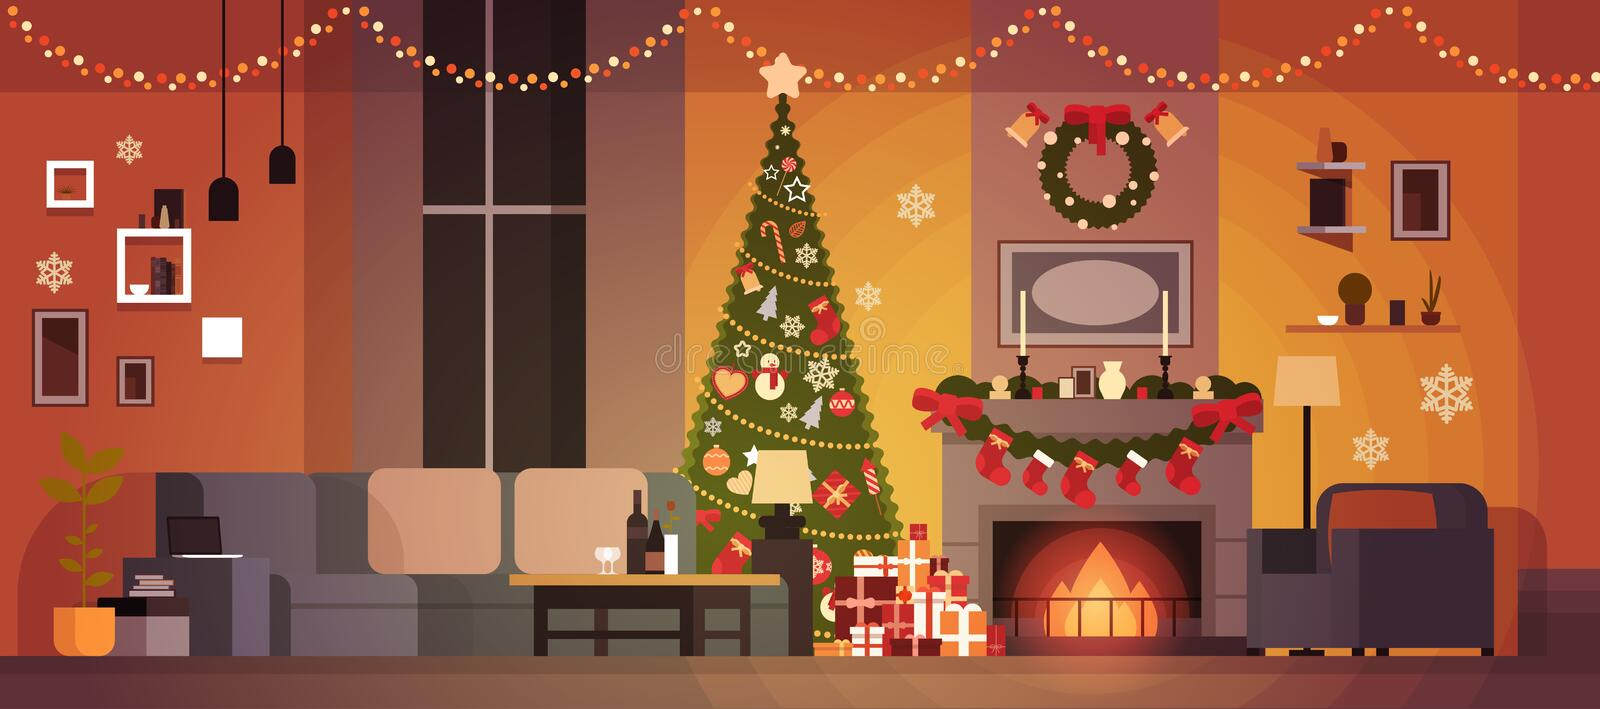 Living Room Decorated For Christmas And New Year With Fir Tree , Fireplace And Garlands Holidays Home Interior. Flat Vector Illustration vector illustration